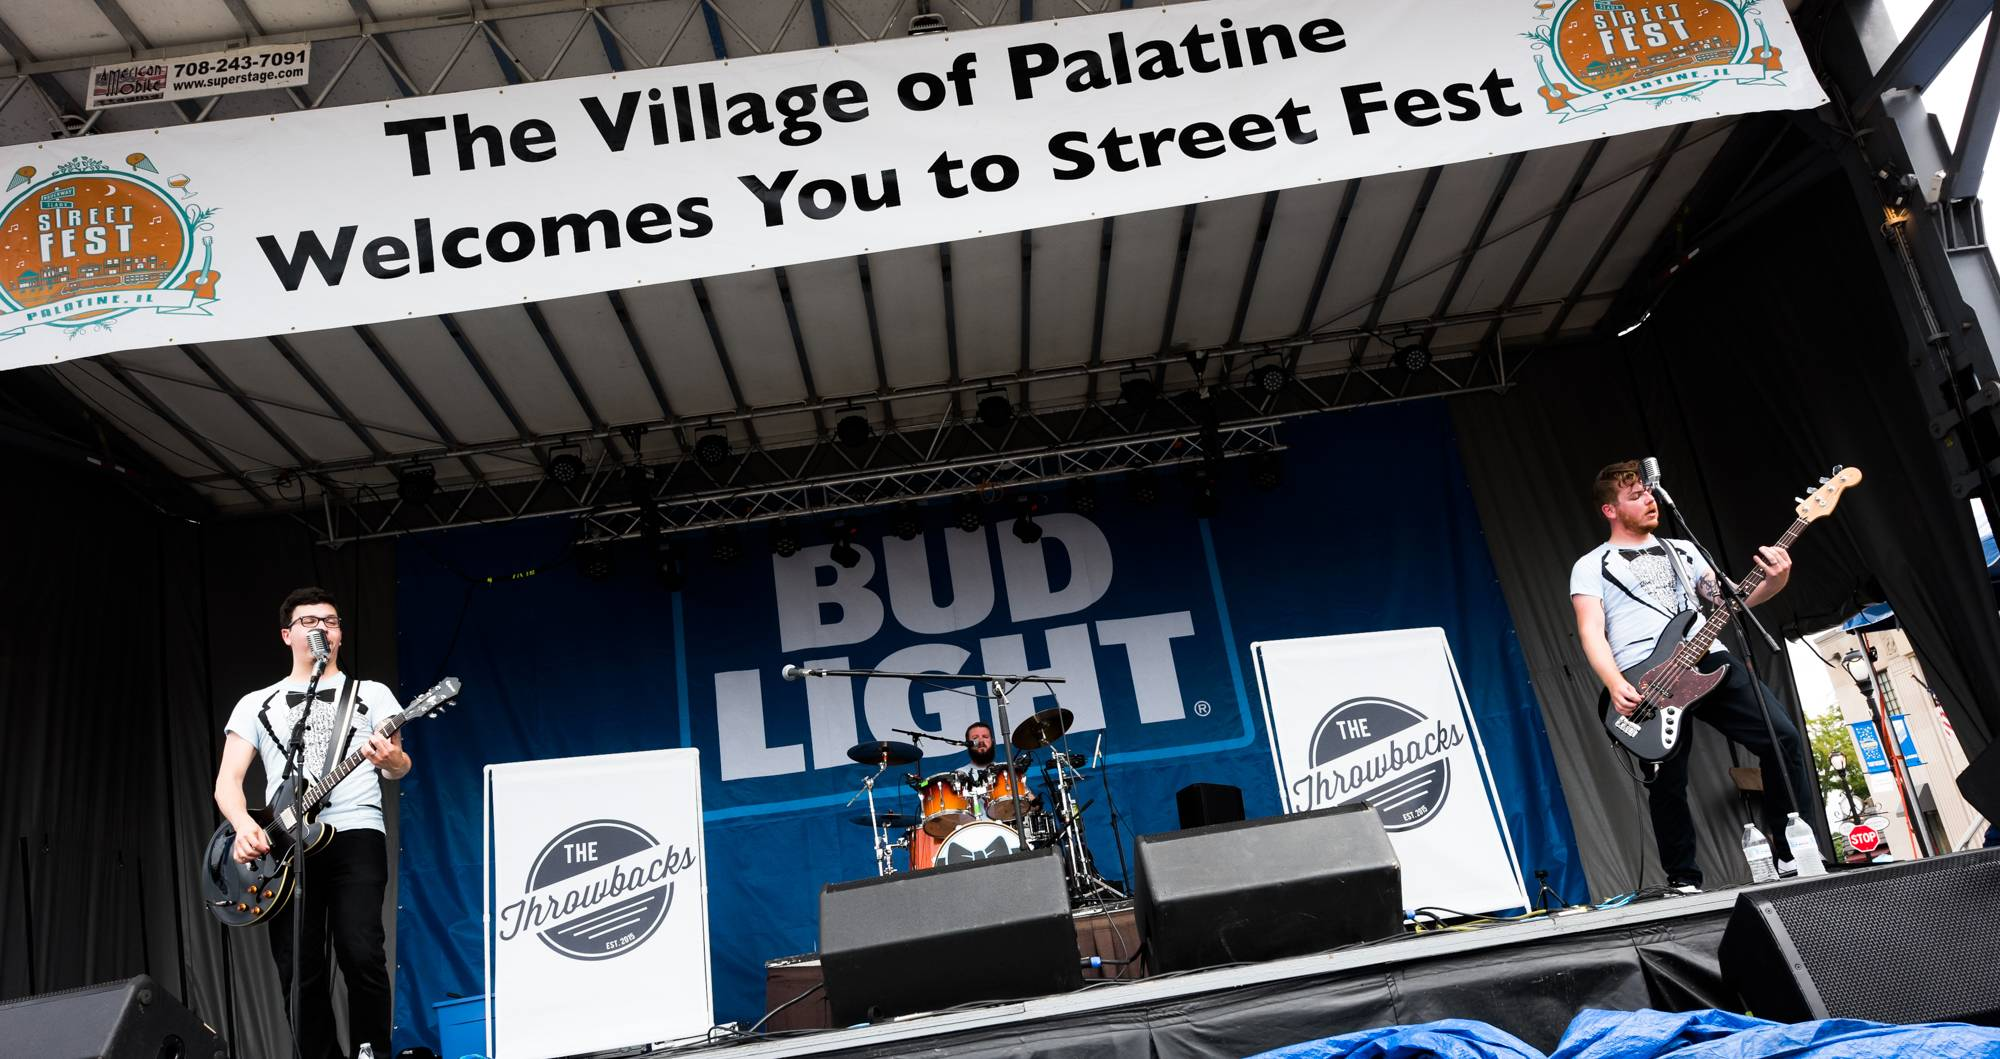 Palatine's annual downtown Street Fest might schedule headlining bands earlier this year, one of several minor changes proposed for the downtown festival.